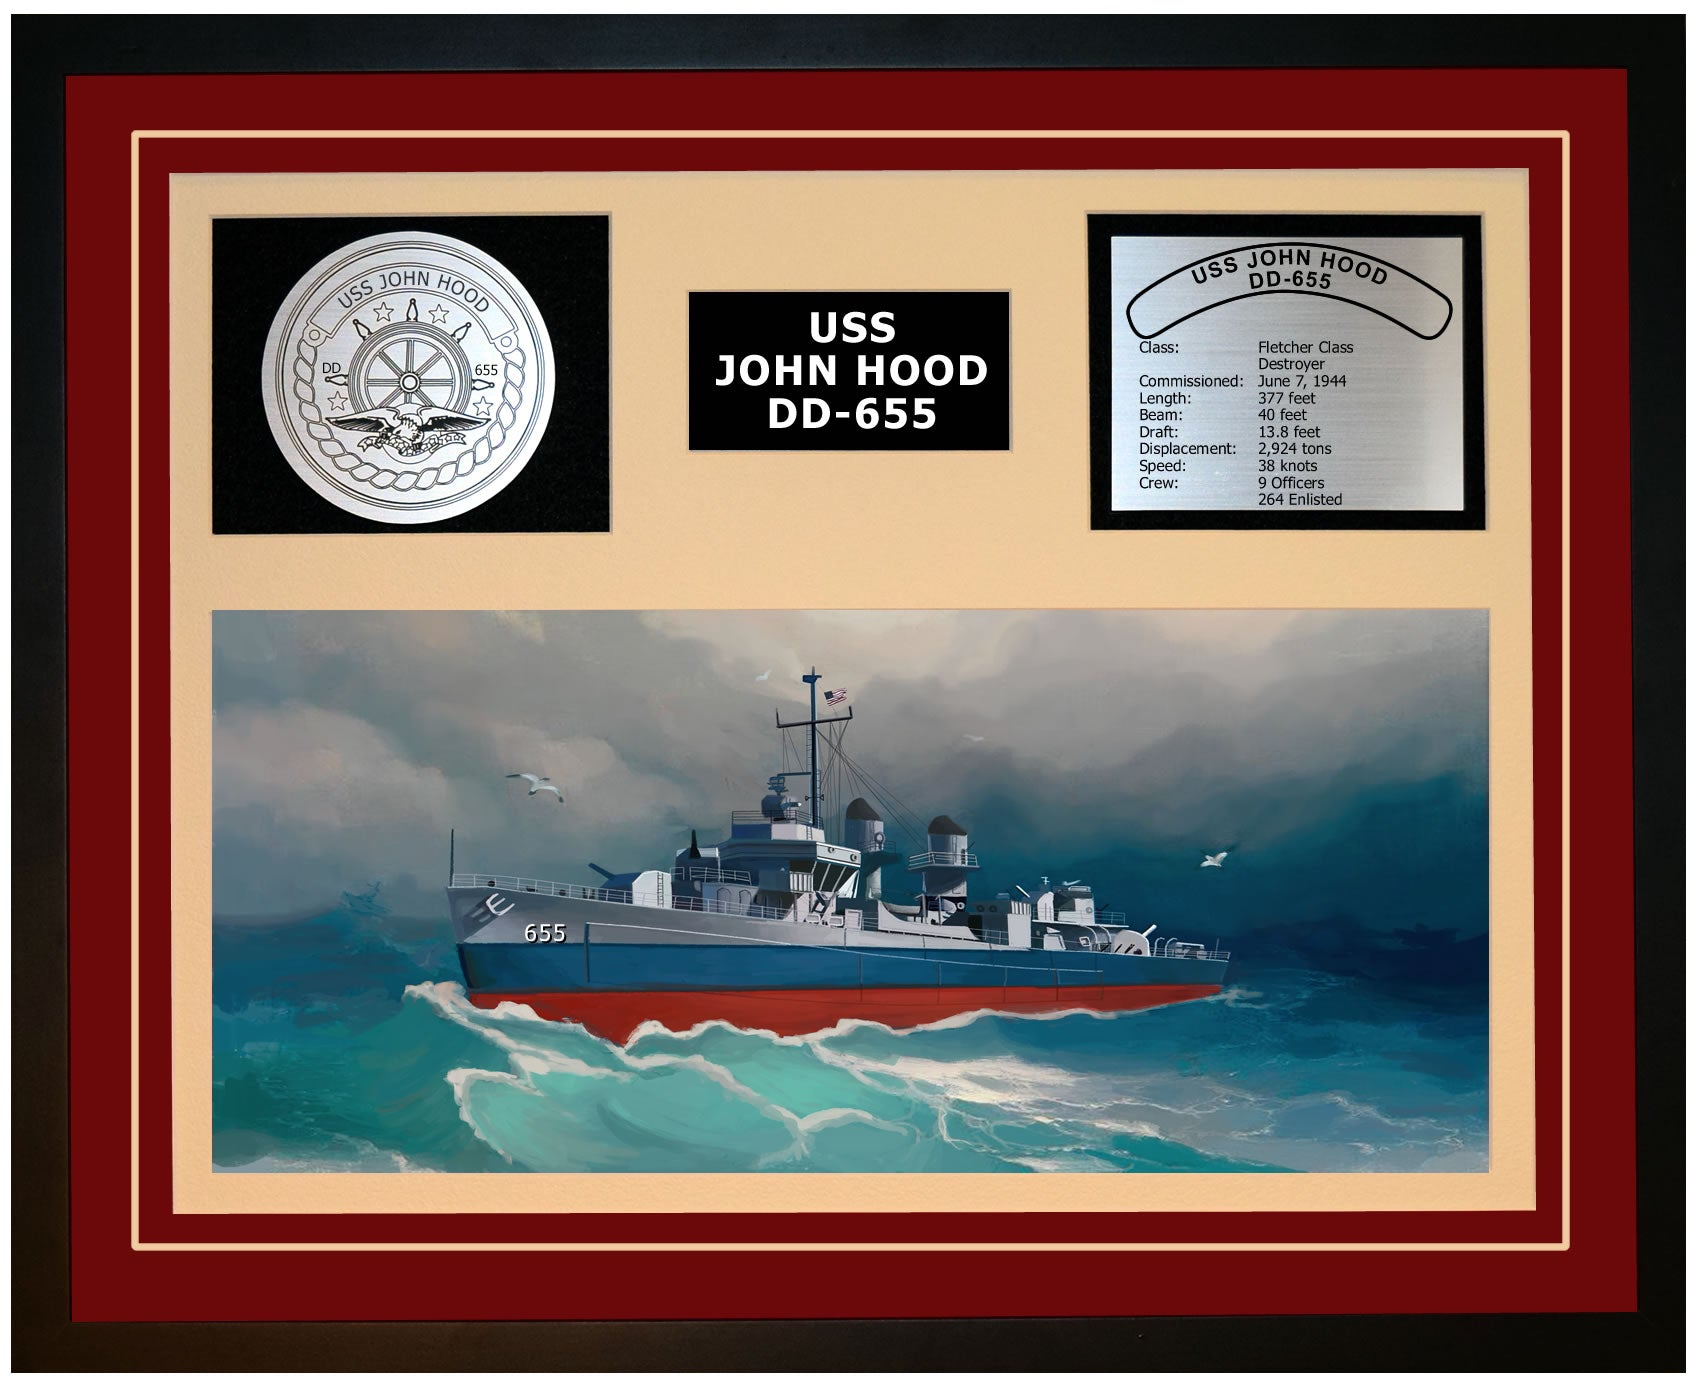 USS JOHN HOOD DD-655 Framed Navy Ship Display Burgundy